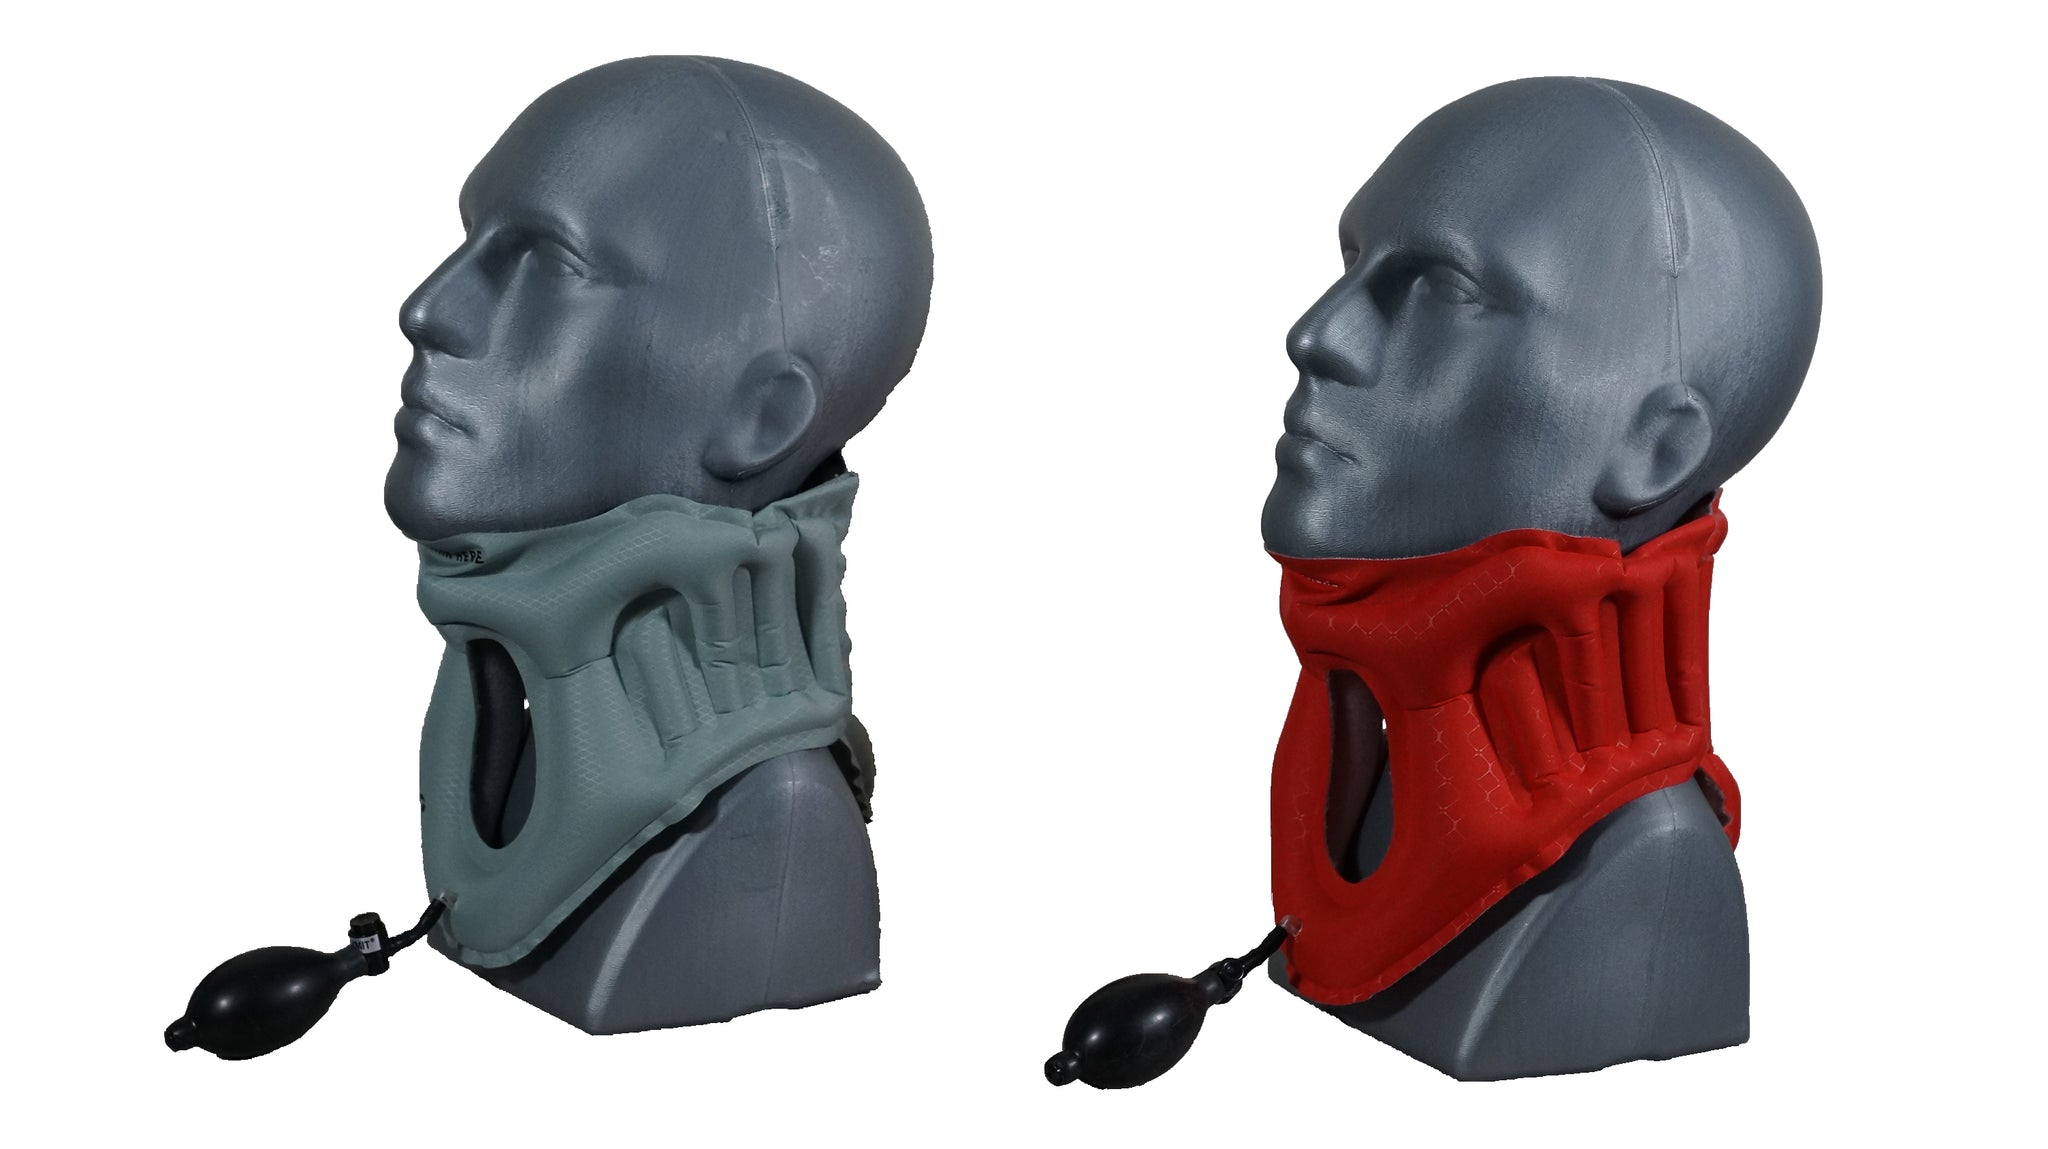 Another Side view of the AER Cervical Collar Inflated